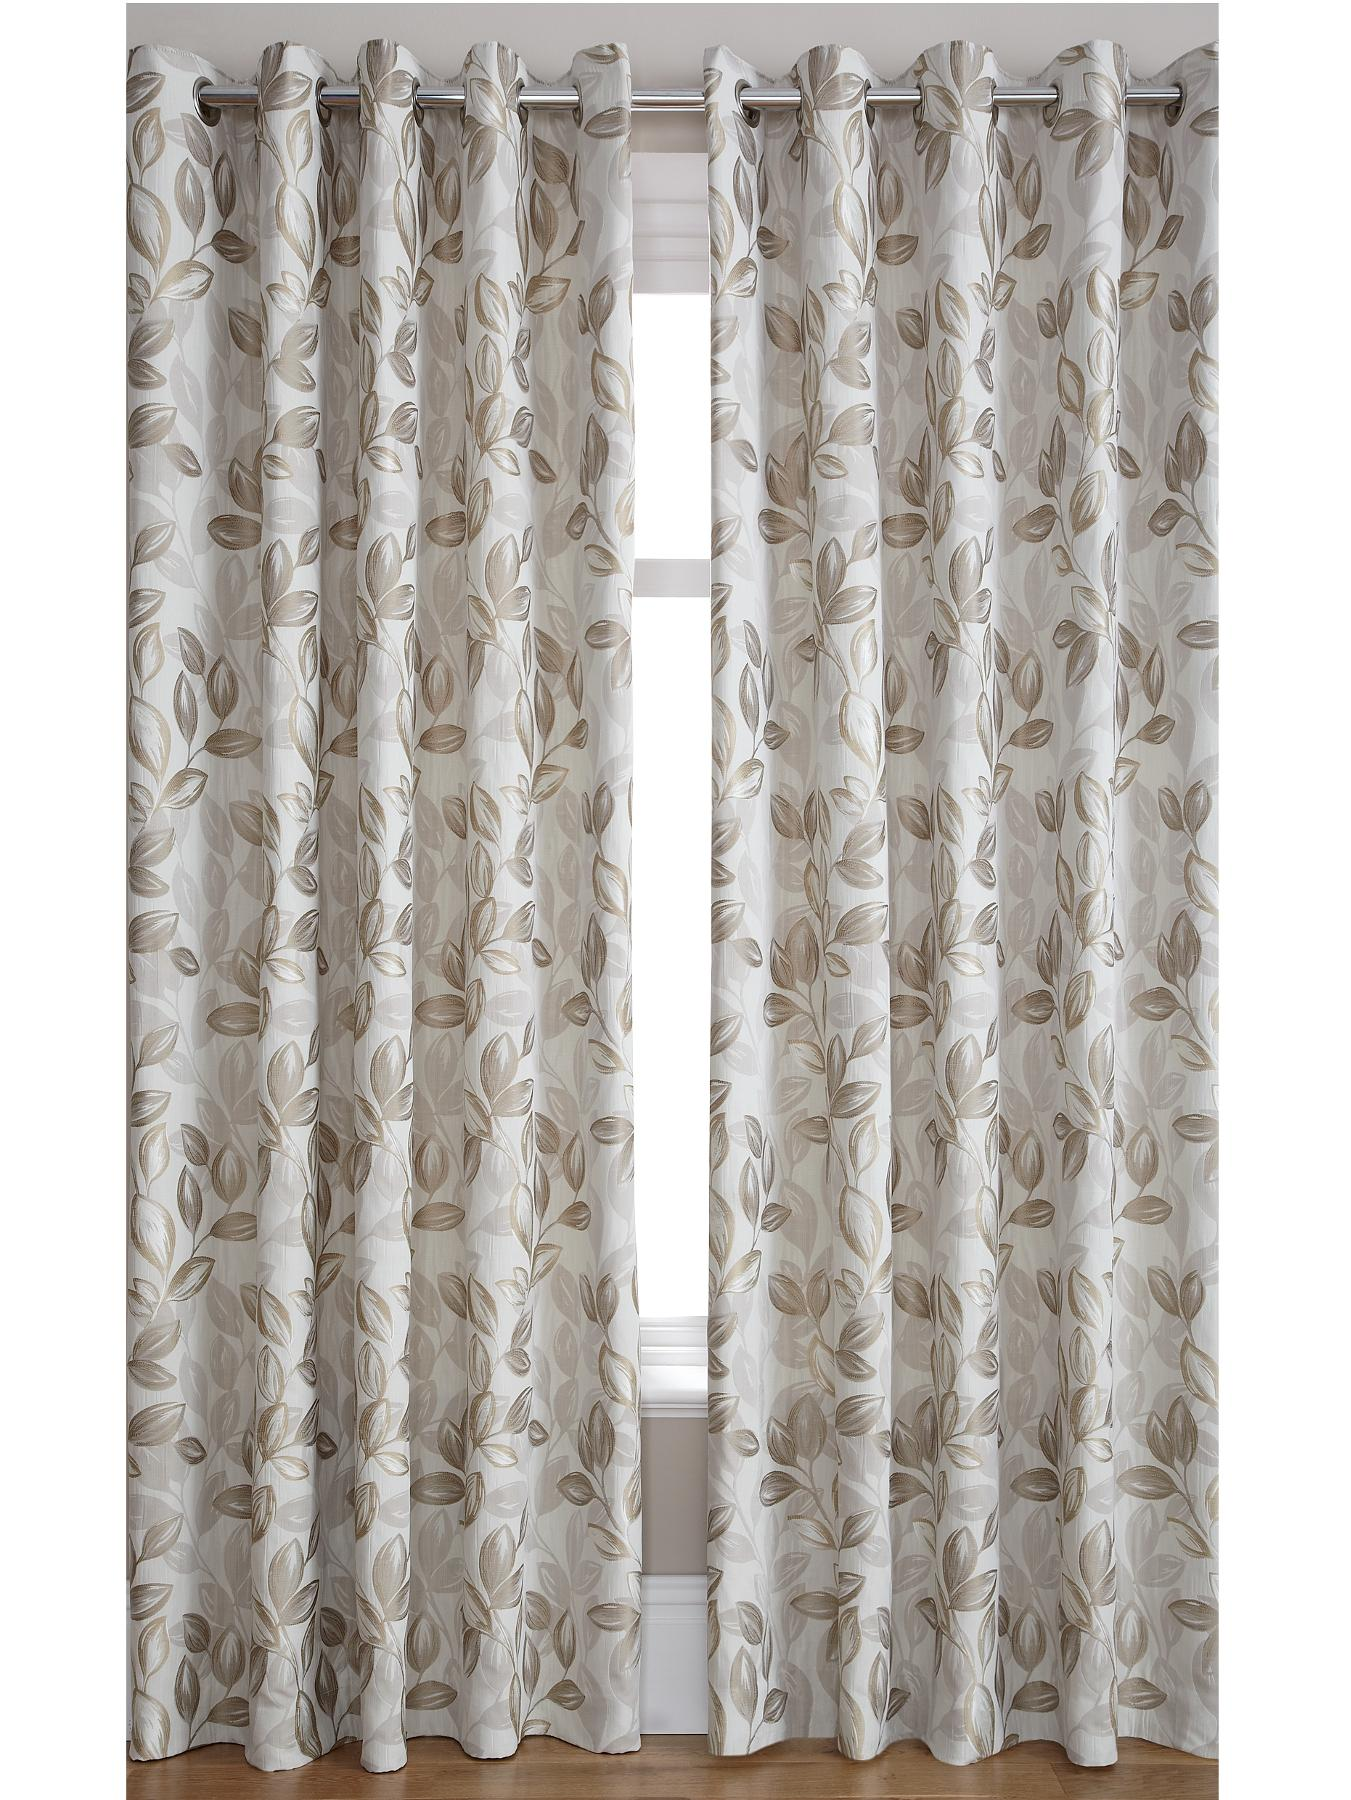 Heidi Jacquard Eyelet Curtains, Red,Black,Plum